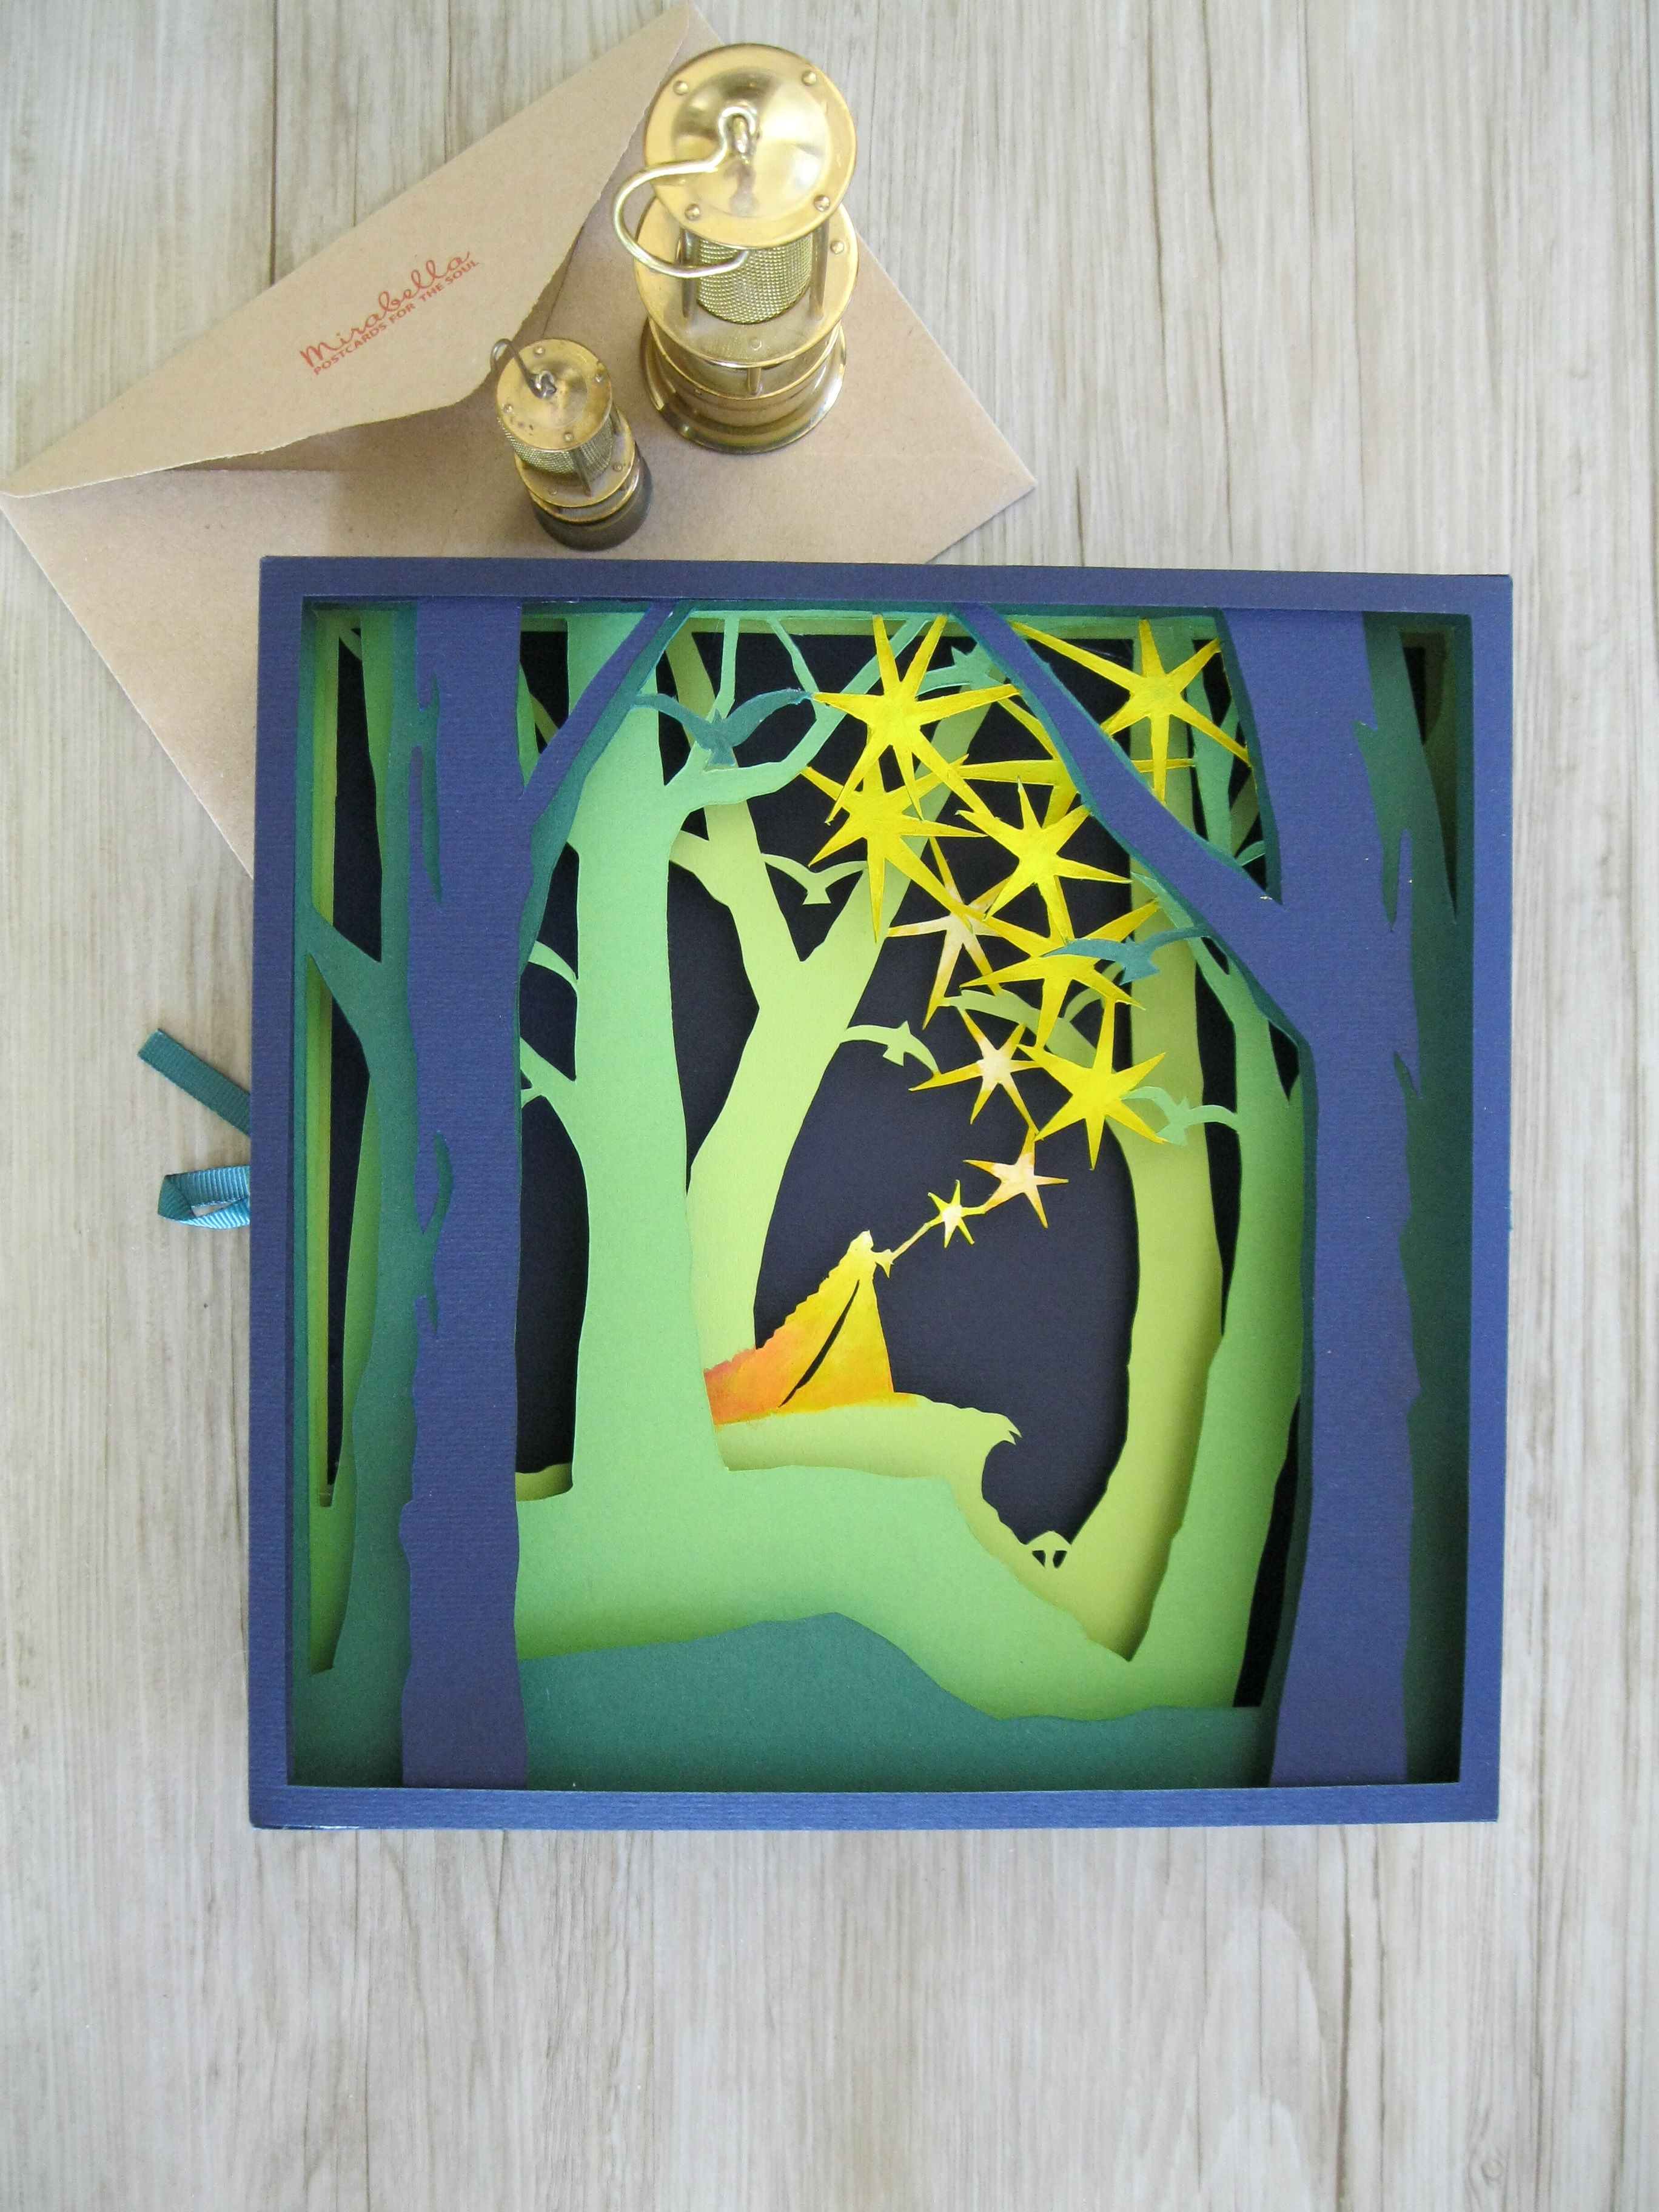 Greeting card picture believe in magic 3d paper cut paper greeting card picture believe in magic 3d paper cut paper volume kristyandbryce Gallery